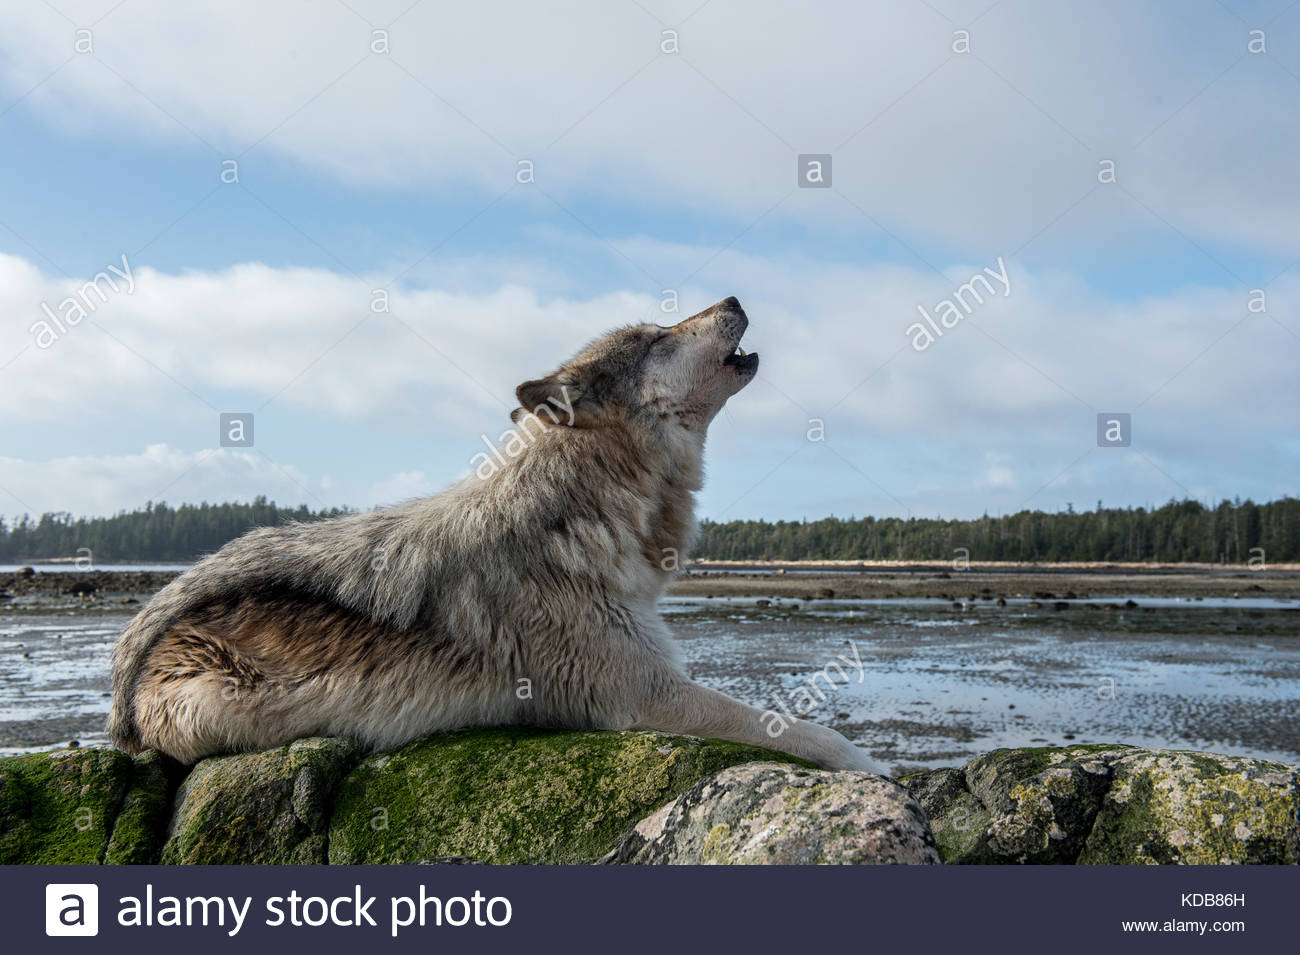 A coastal wolf, Canis lupus, howls on a beach at low tide. Stock Photo